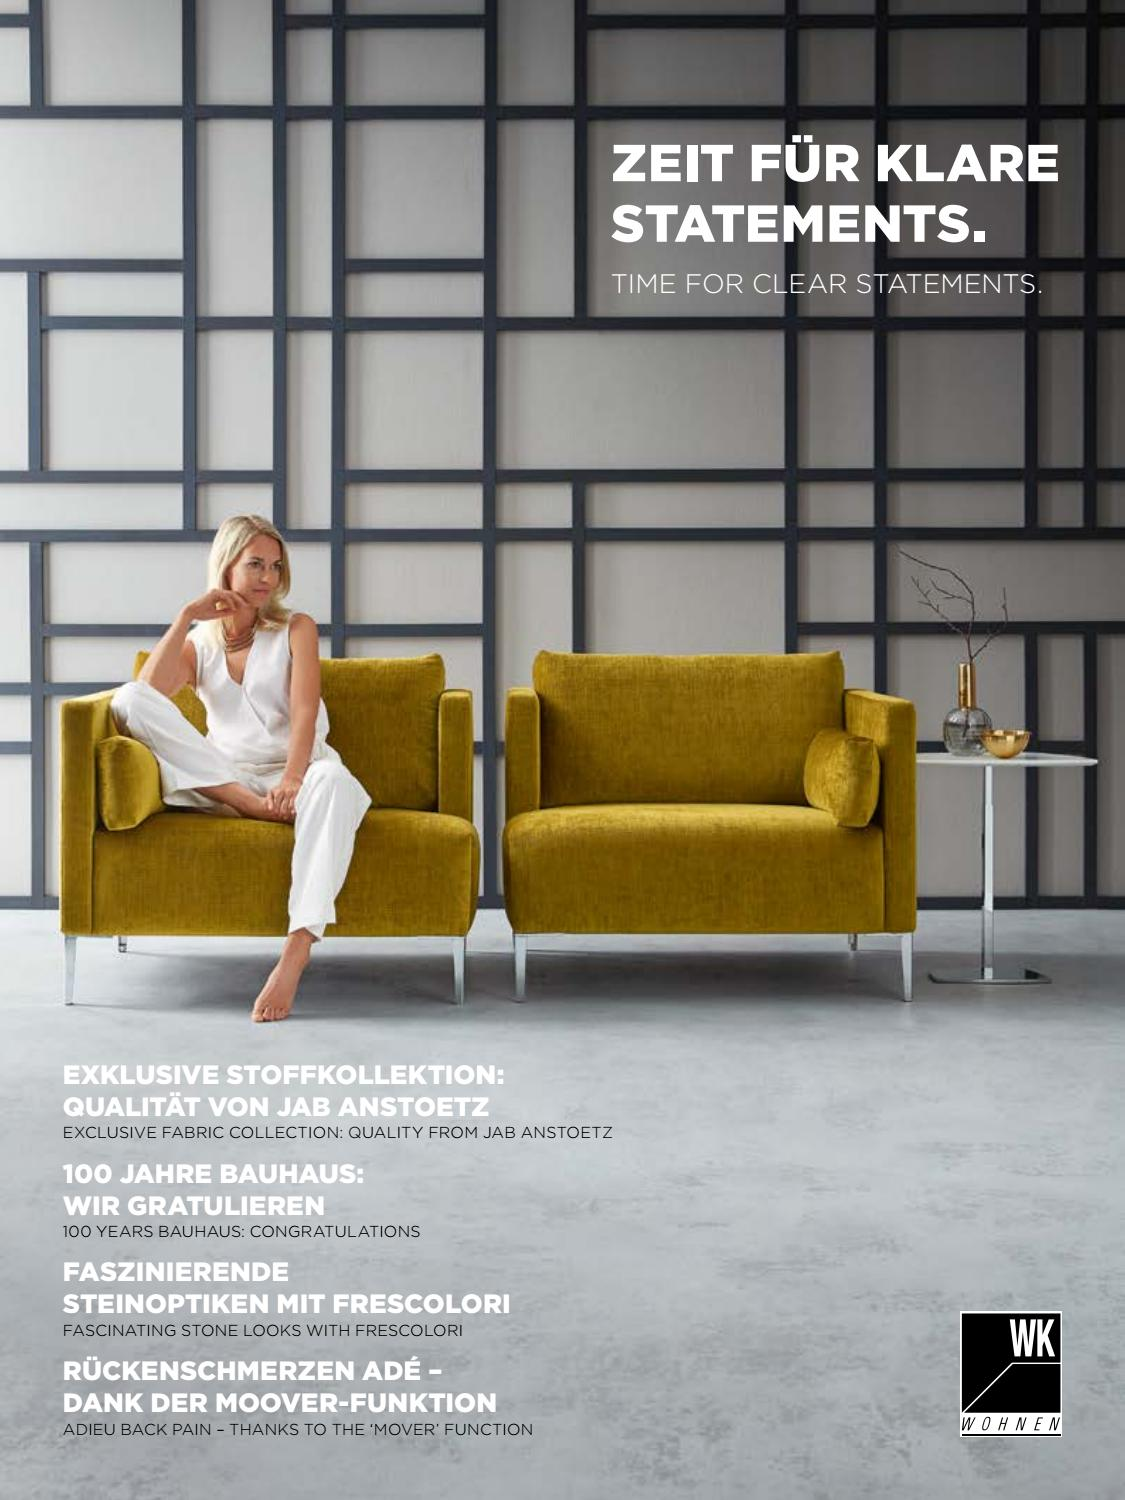 Wk Wohnen Journal By Perspektive Werbeagentur Issuu